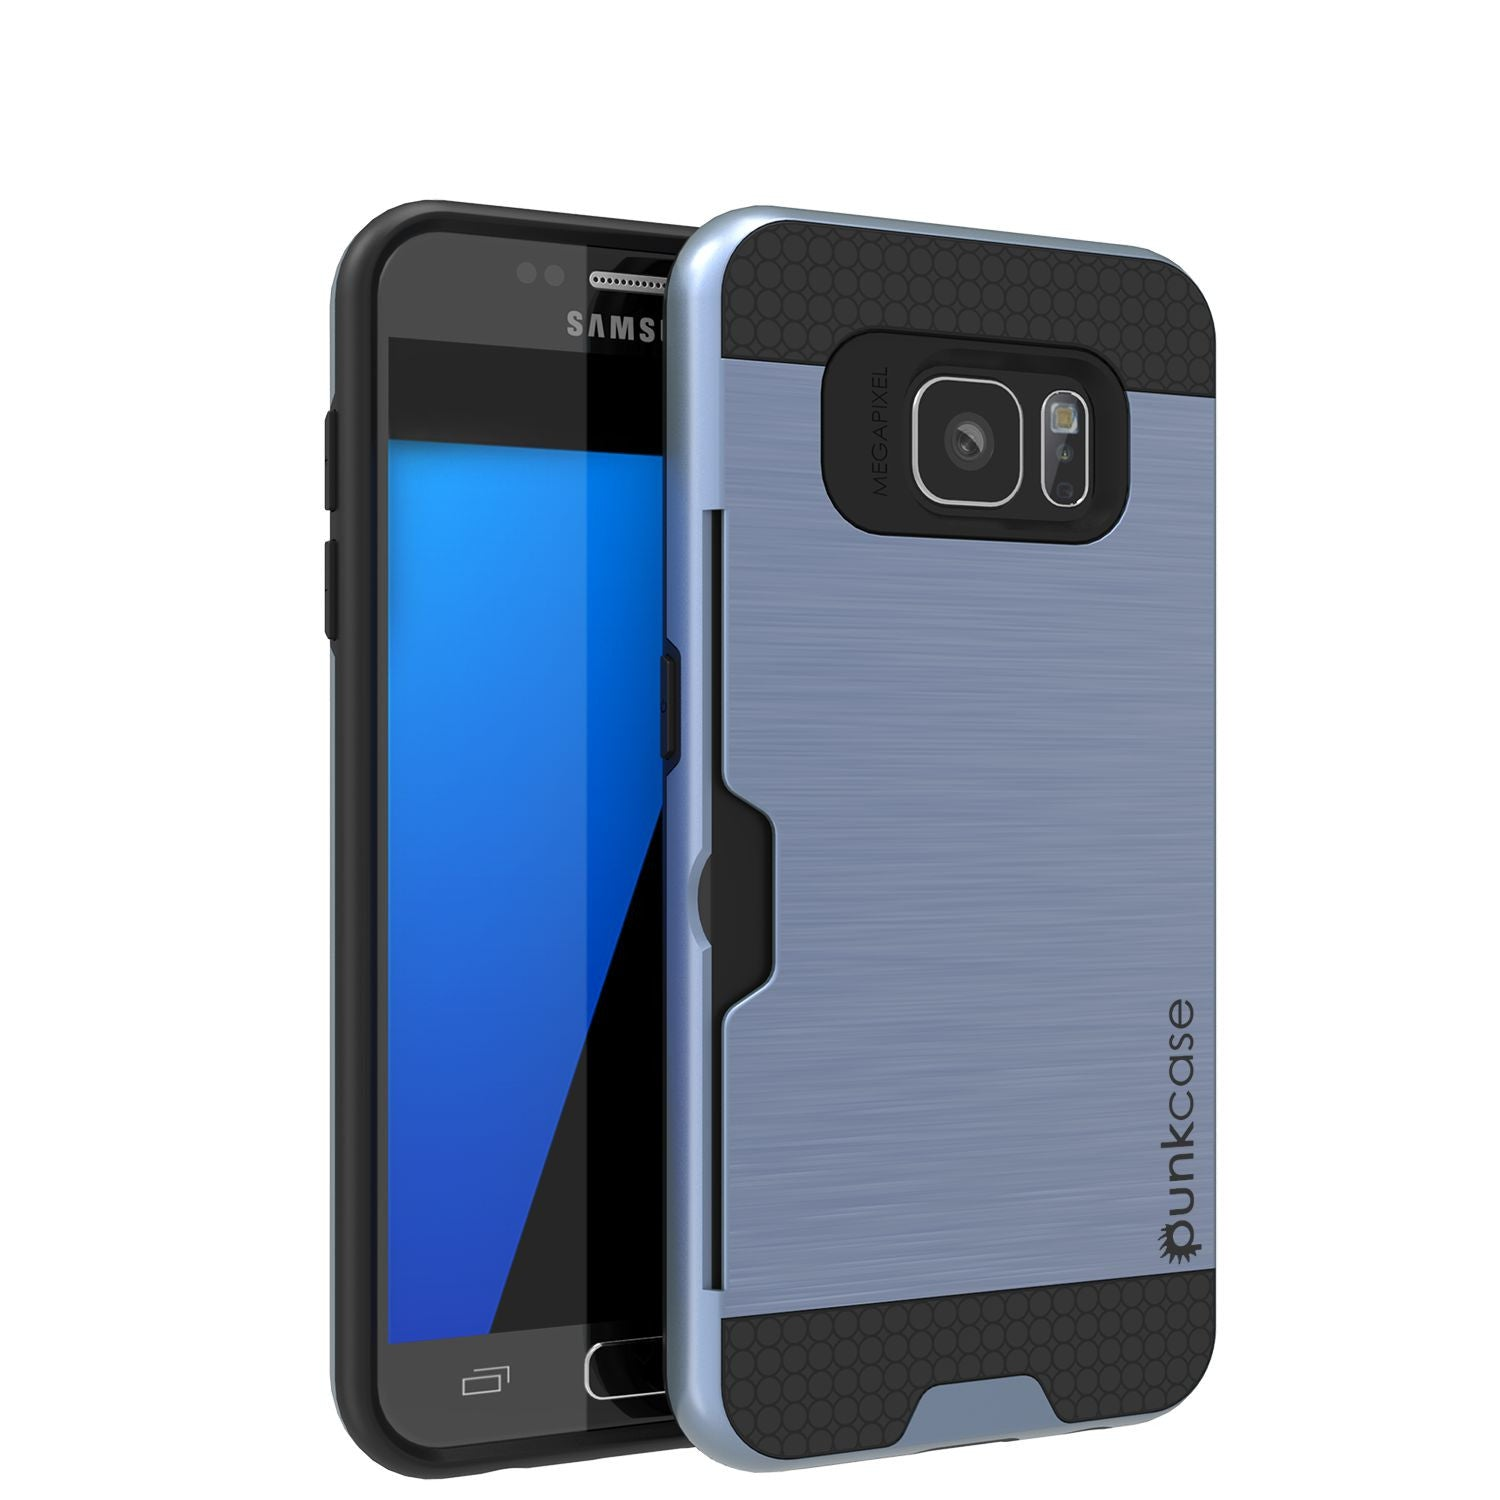 Galaxy s7 Case PunkCase SLOT Navy Series Slim Armor Soft Cover Case w/ Tempered Glass